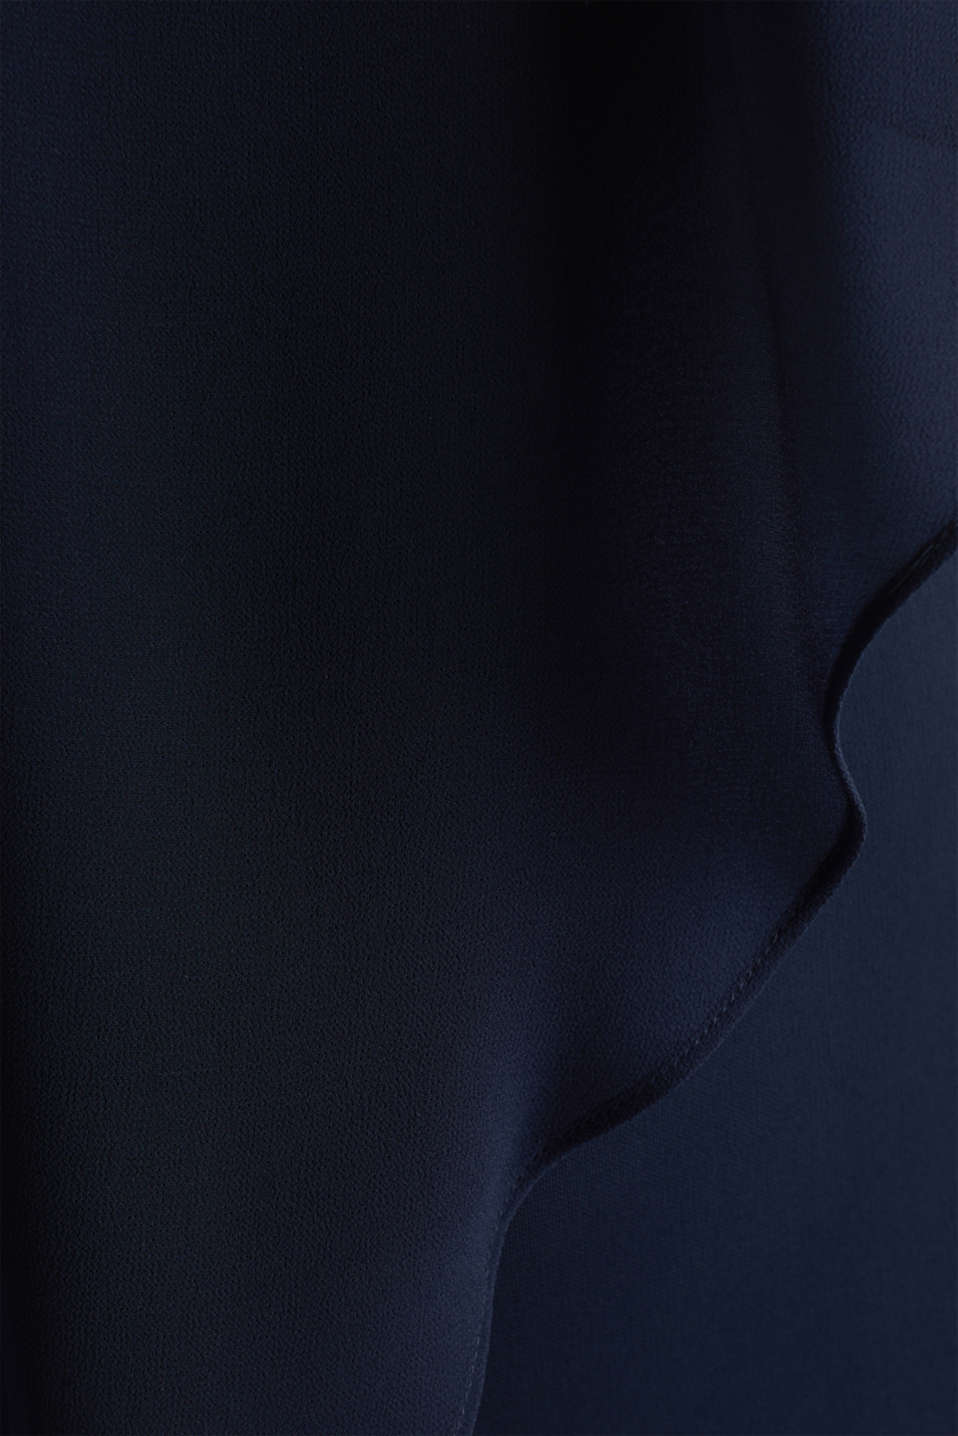 Jersey dress with chiffon layering, NAVY, detail image number 4